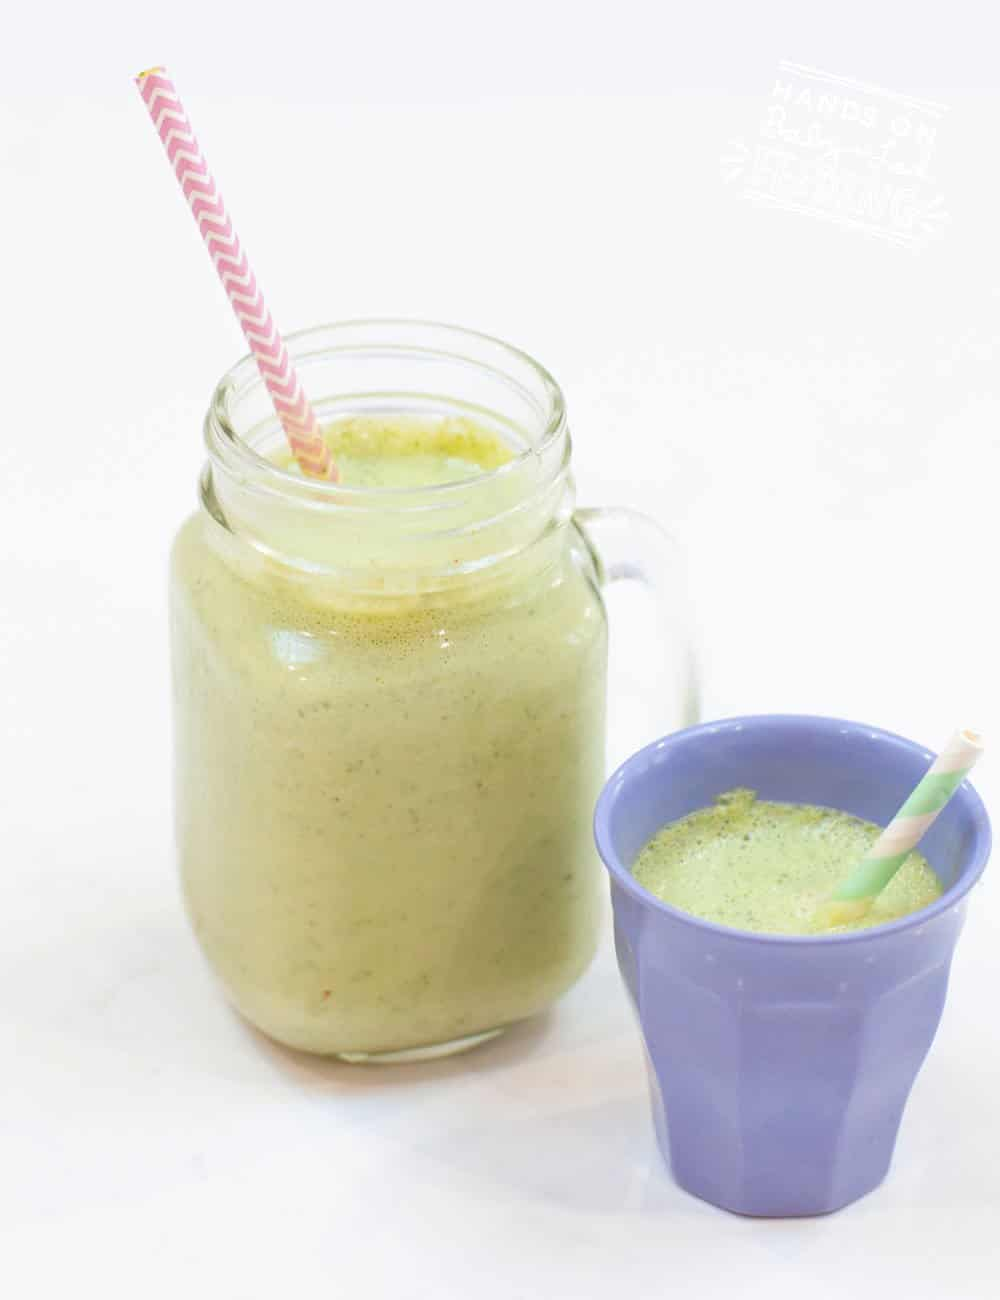 Kale and Pineapple Smoothie has just 5 ingredients and is full of healthy veggies, sweet pineapple, and tangy lime! This easy smoothie makes a quick breakfast or easy snack and is an excellent way to hide veggies from your picky eater! #smoothierecipe #pineapple #pickyeater #babyledweaning